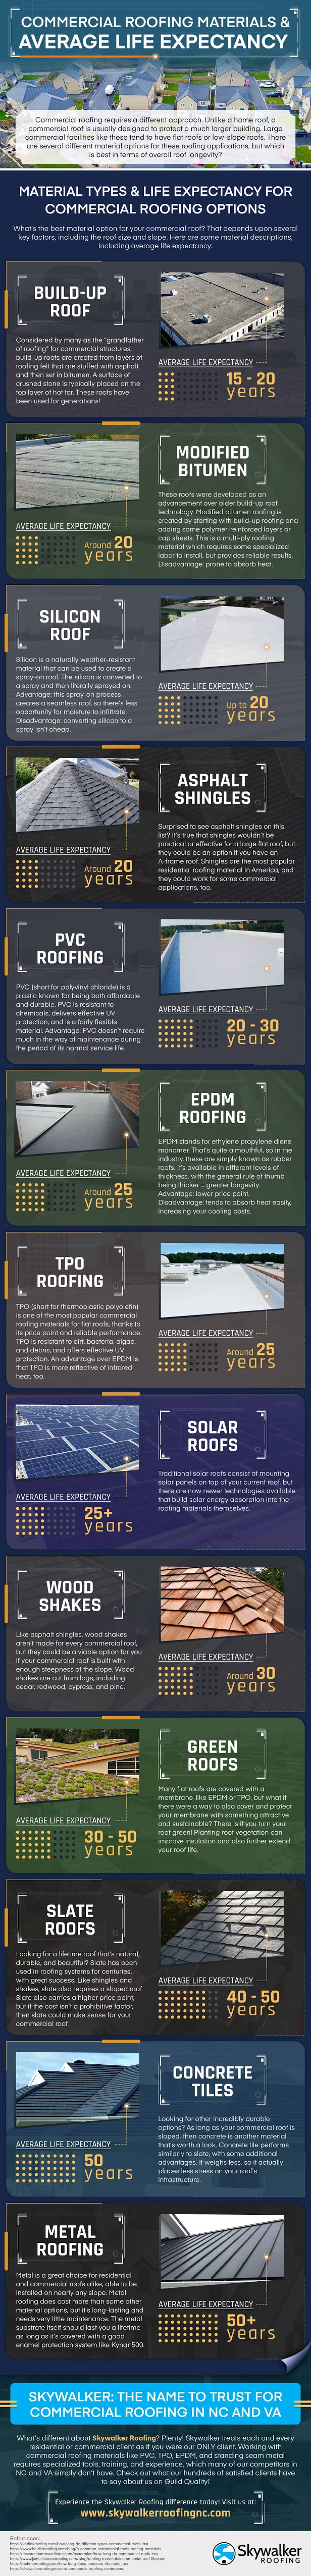 Commercial Roofing Materials & Average Life Expectancy #infographic #Home Improvement #infographics #Roofing Materials